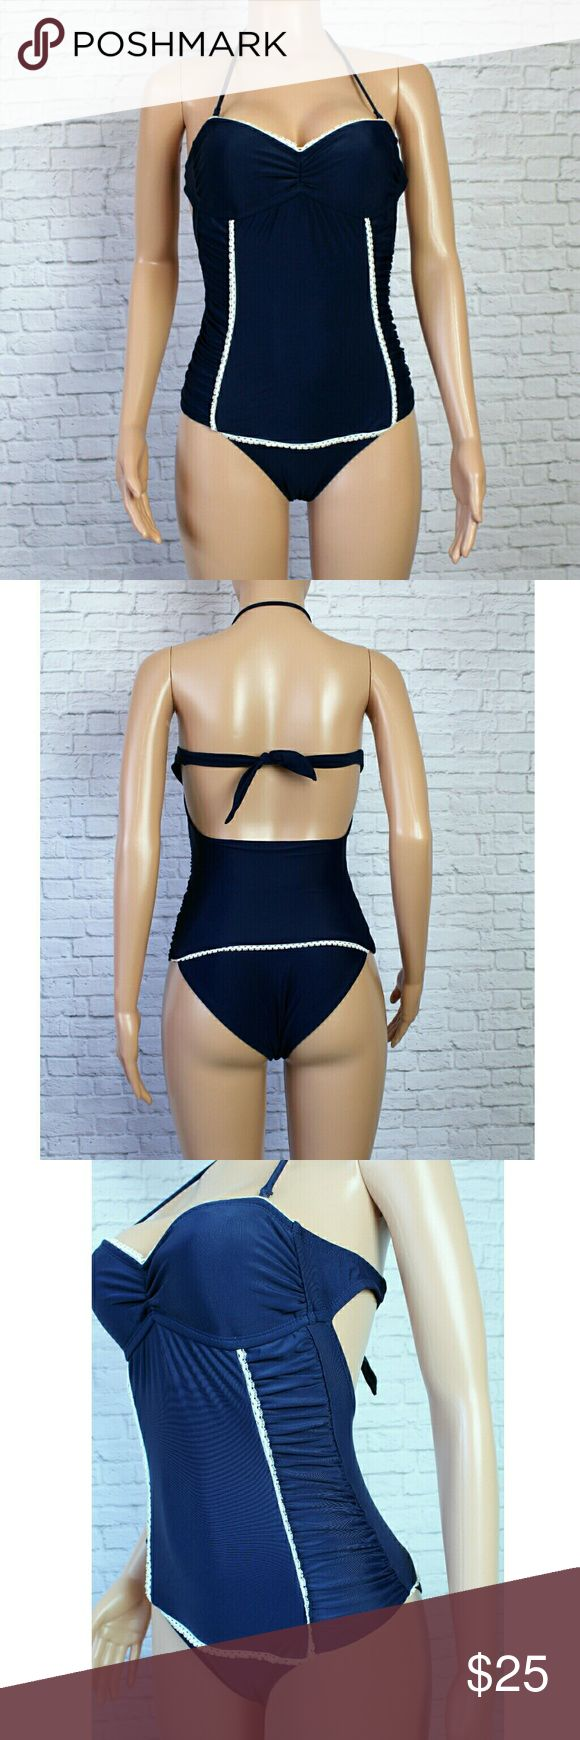 VM Blue & White Lace One Piece Swim suit Adorable dark blue one piece with lace detail. Has removable halter straps, back tie and ruching on the sides. The bust pads are removable. Size Small  NWOT VM Swim One Pieces